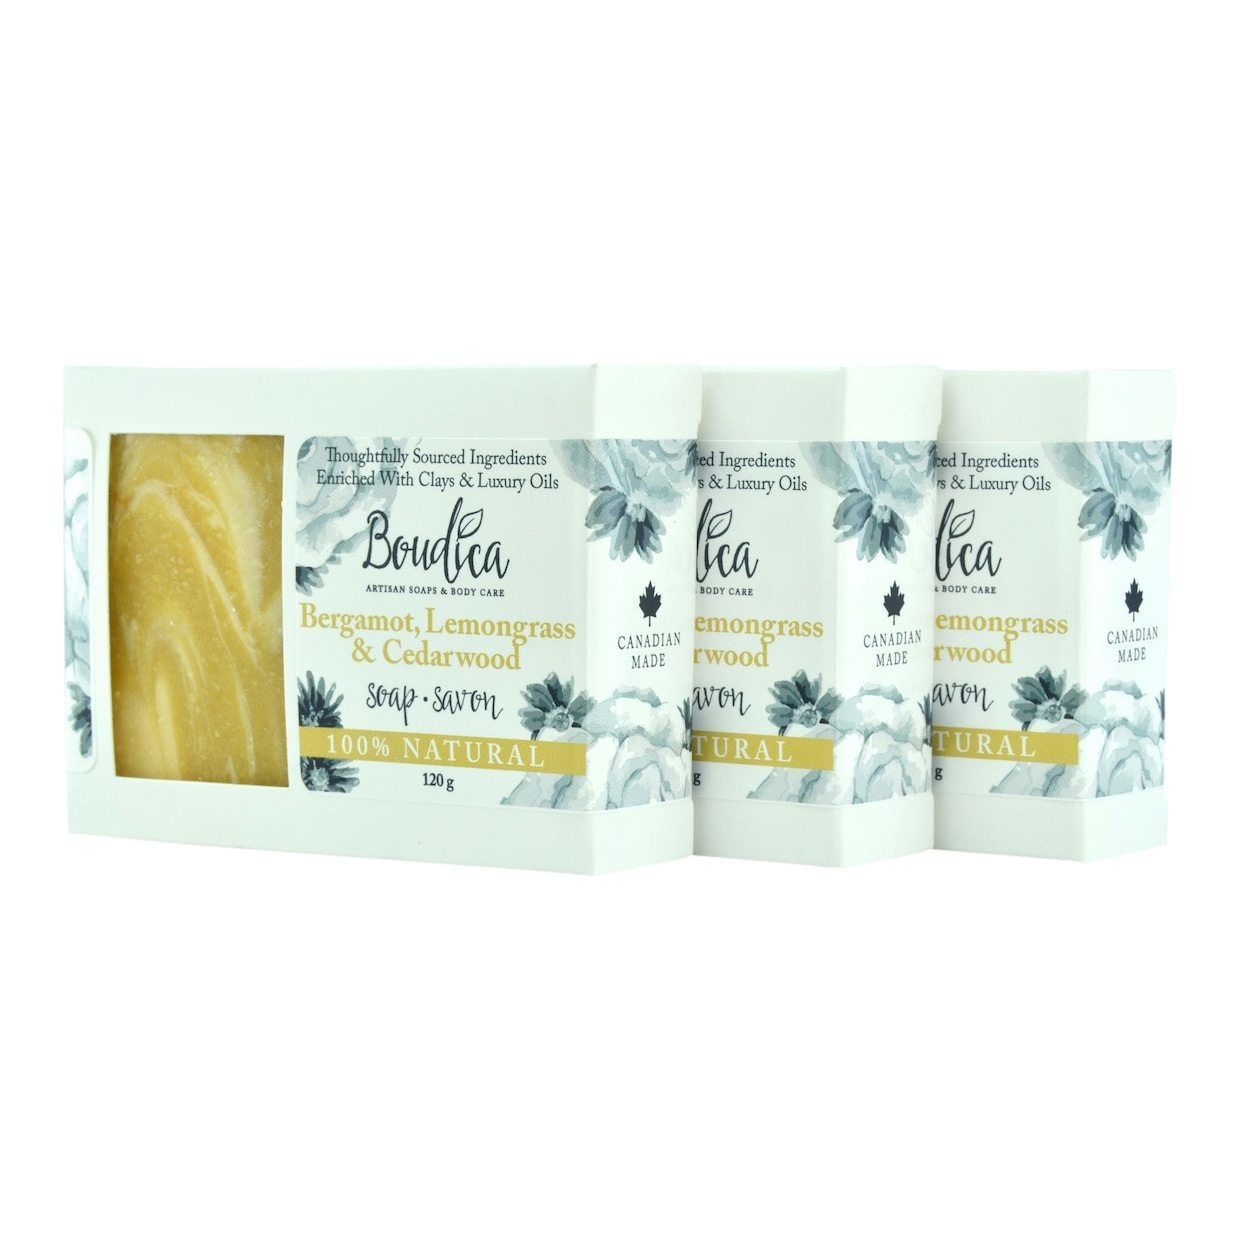 Bergamot, Lemongrass & Cedarwood soap, gift packaging - Boudica Body Care